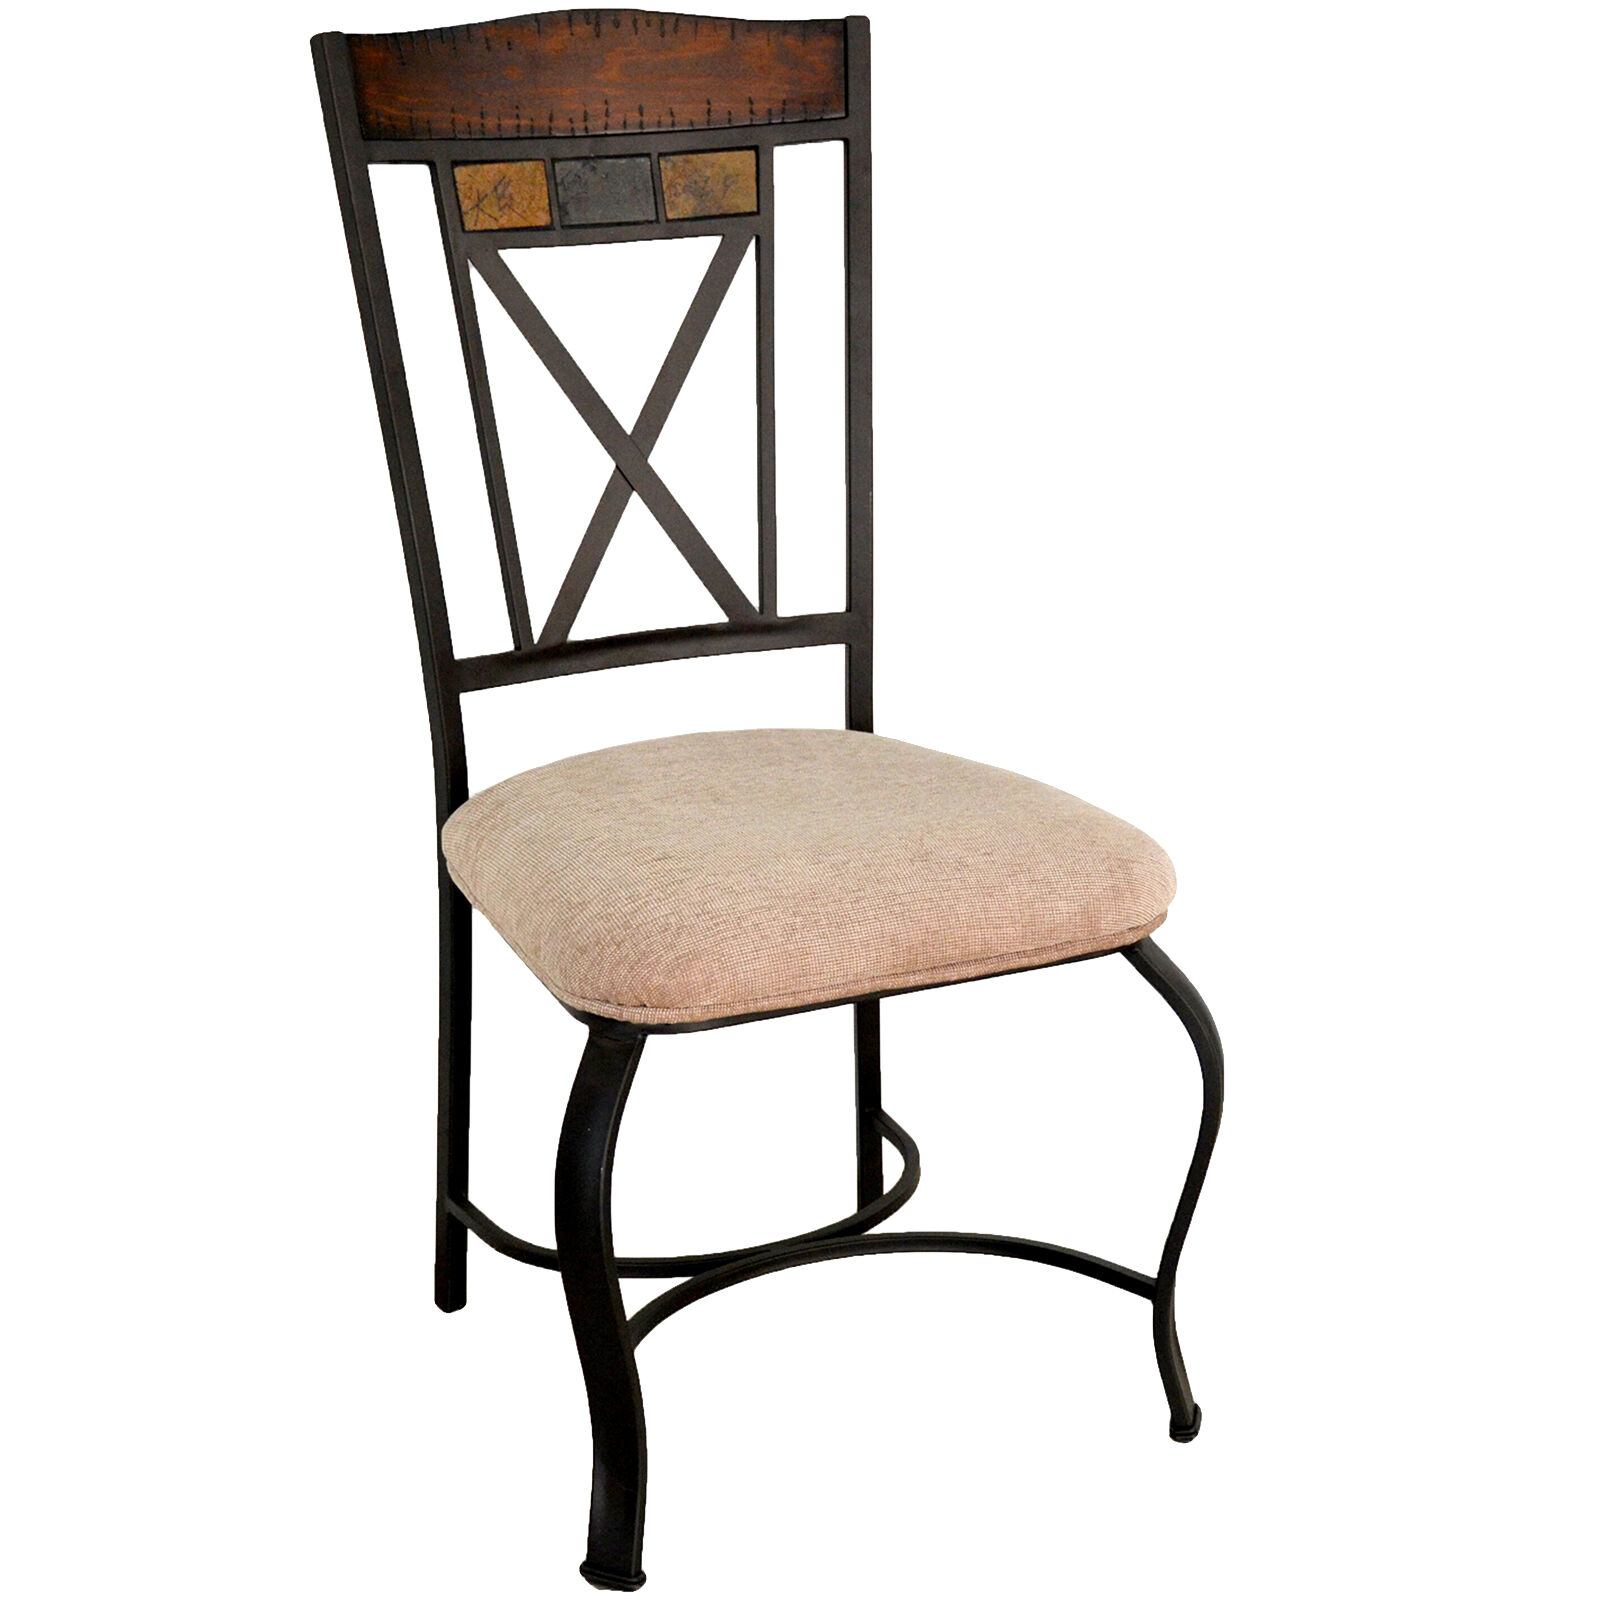 chair design metal cane back chairs antique cross designed dining at home